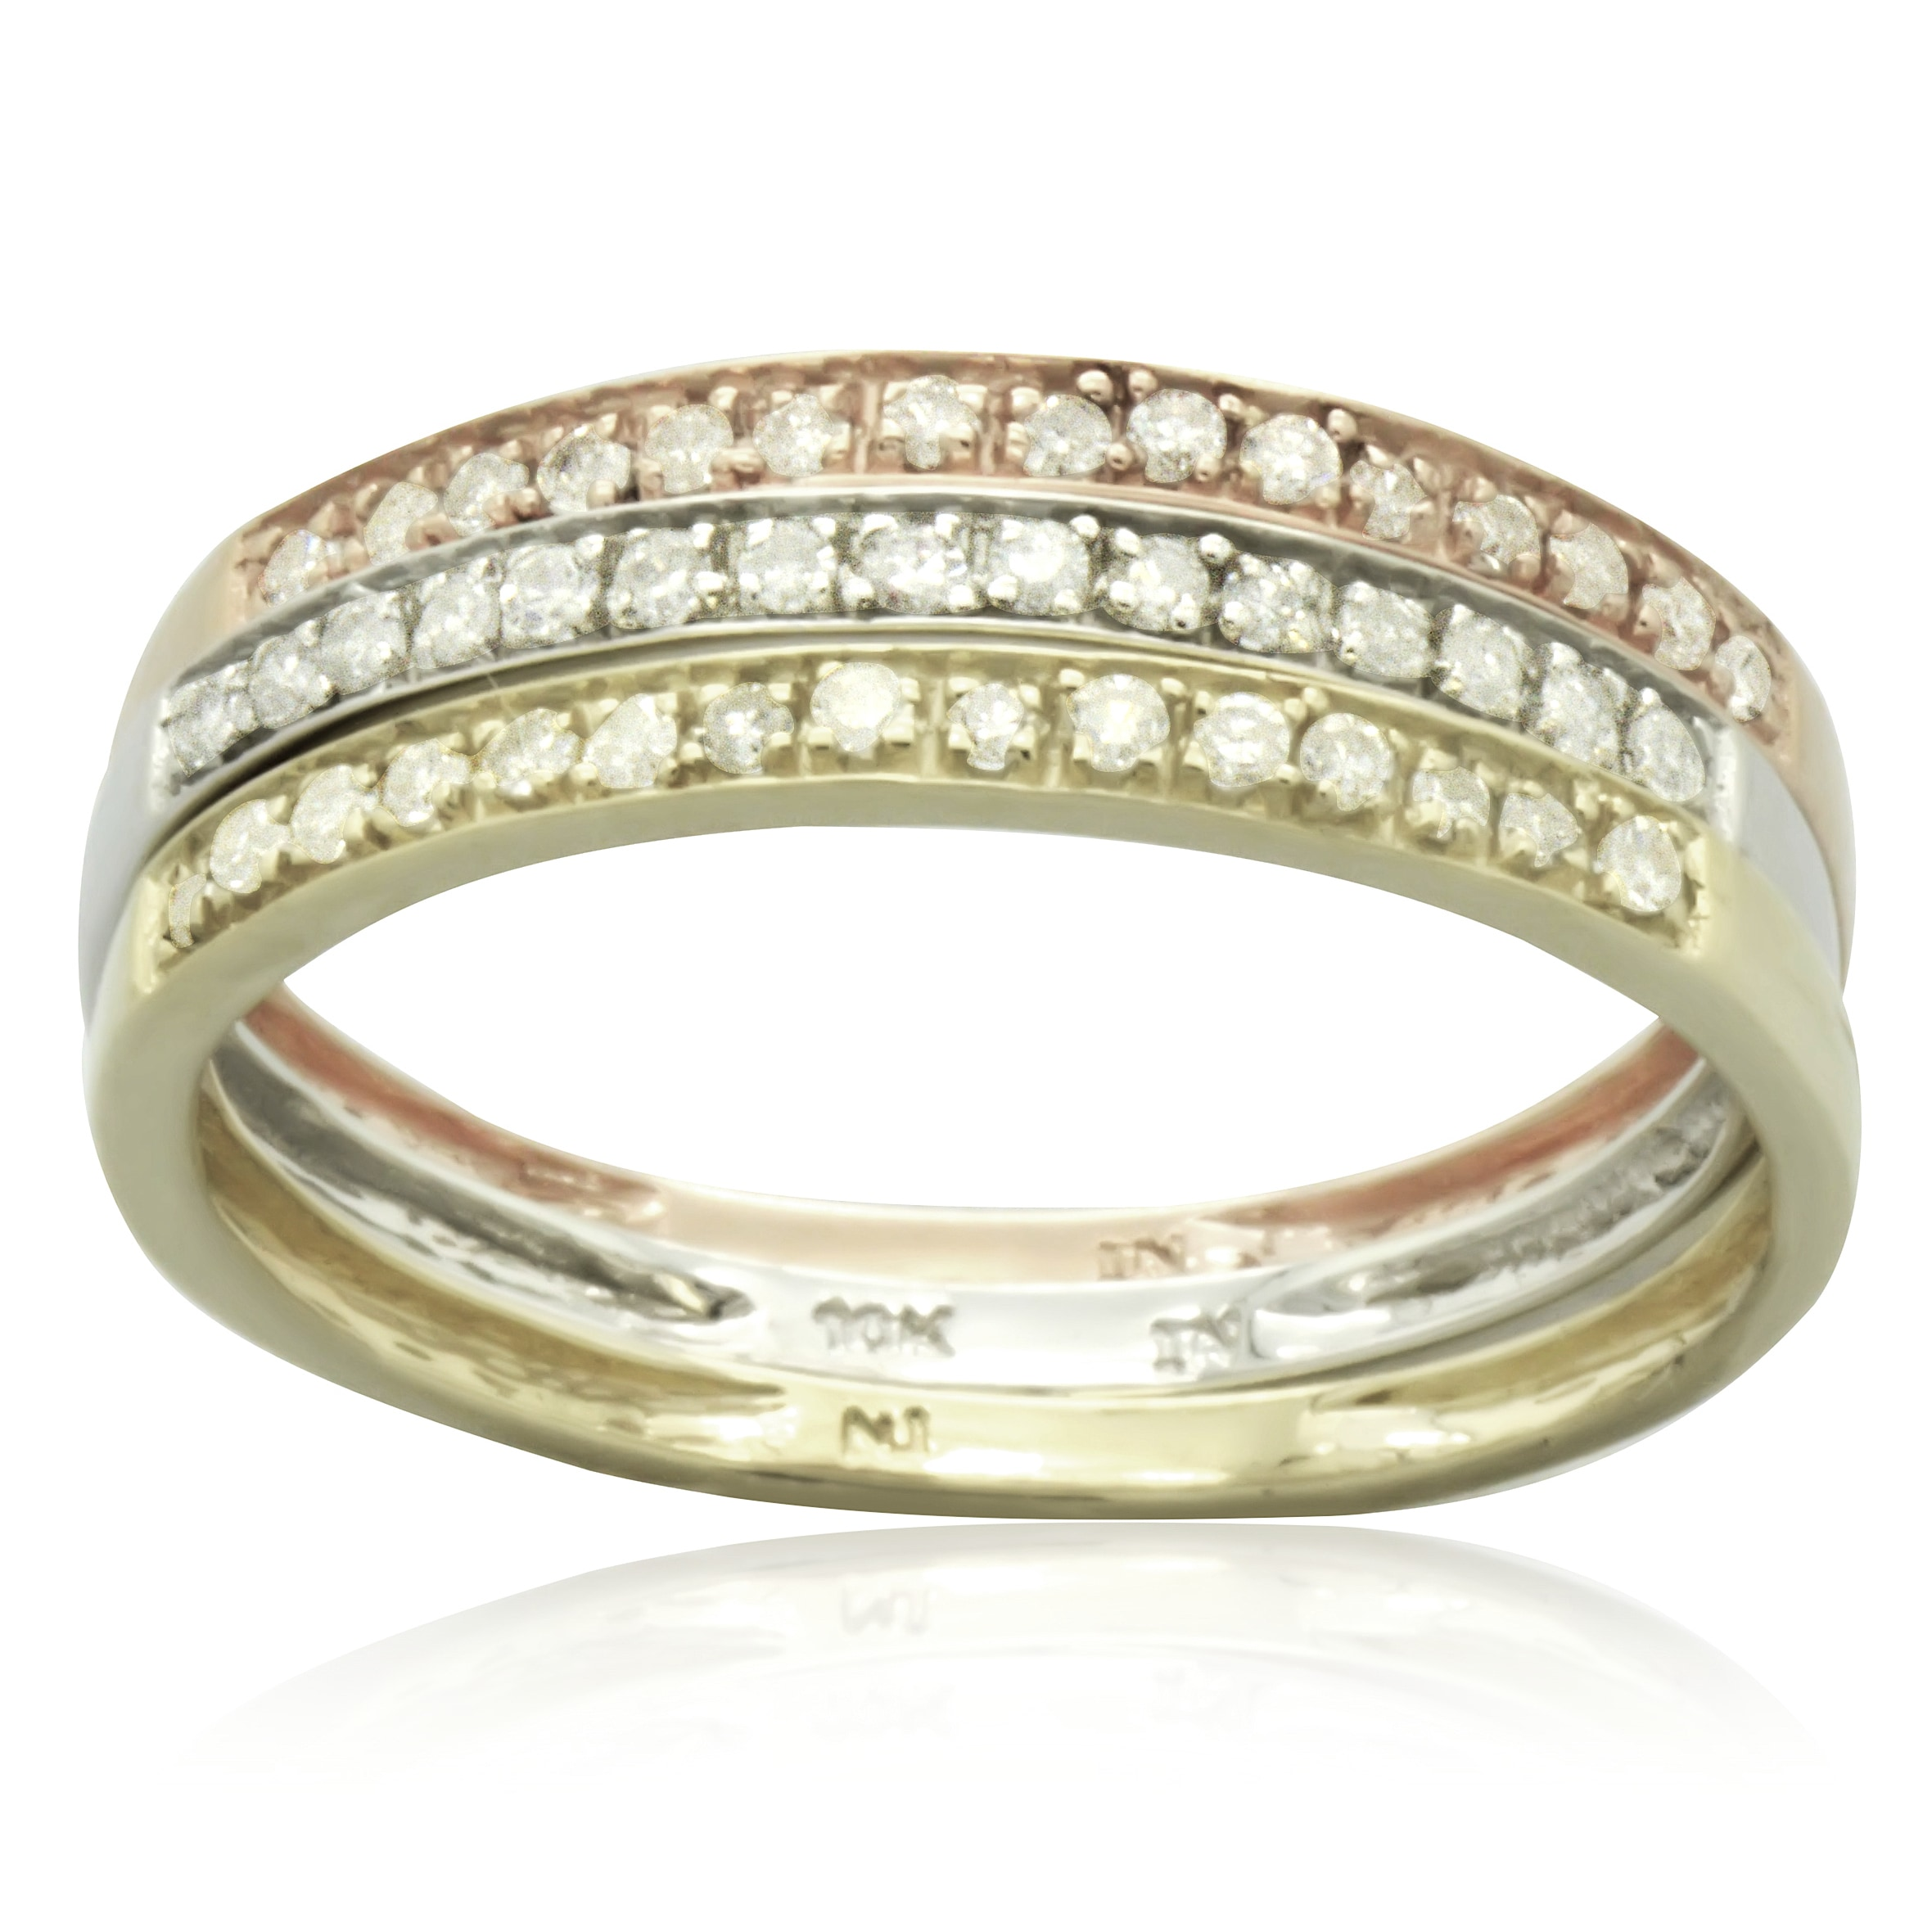 tri in rolling pinterest wedding gold pin bands ideas diamonds colored ring color